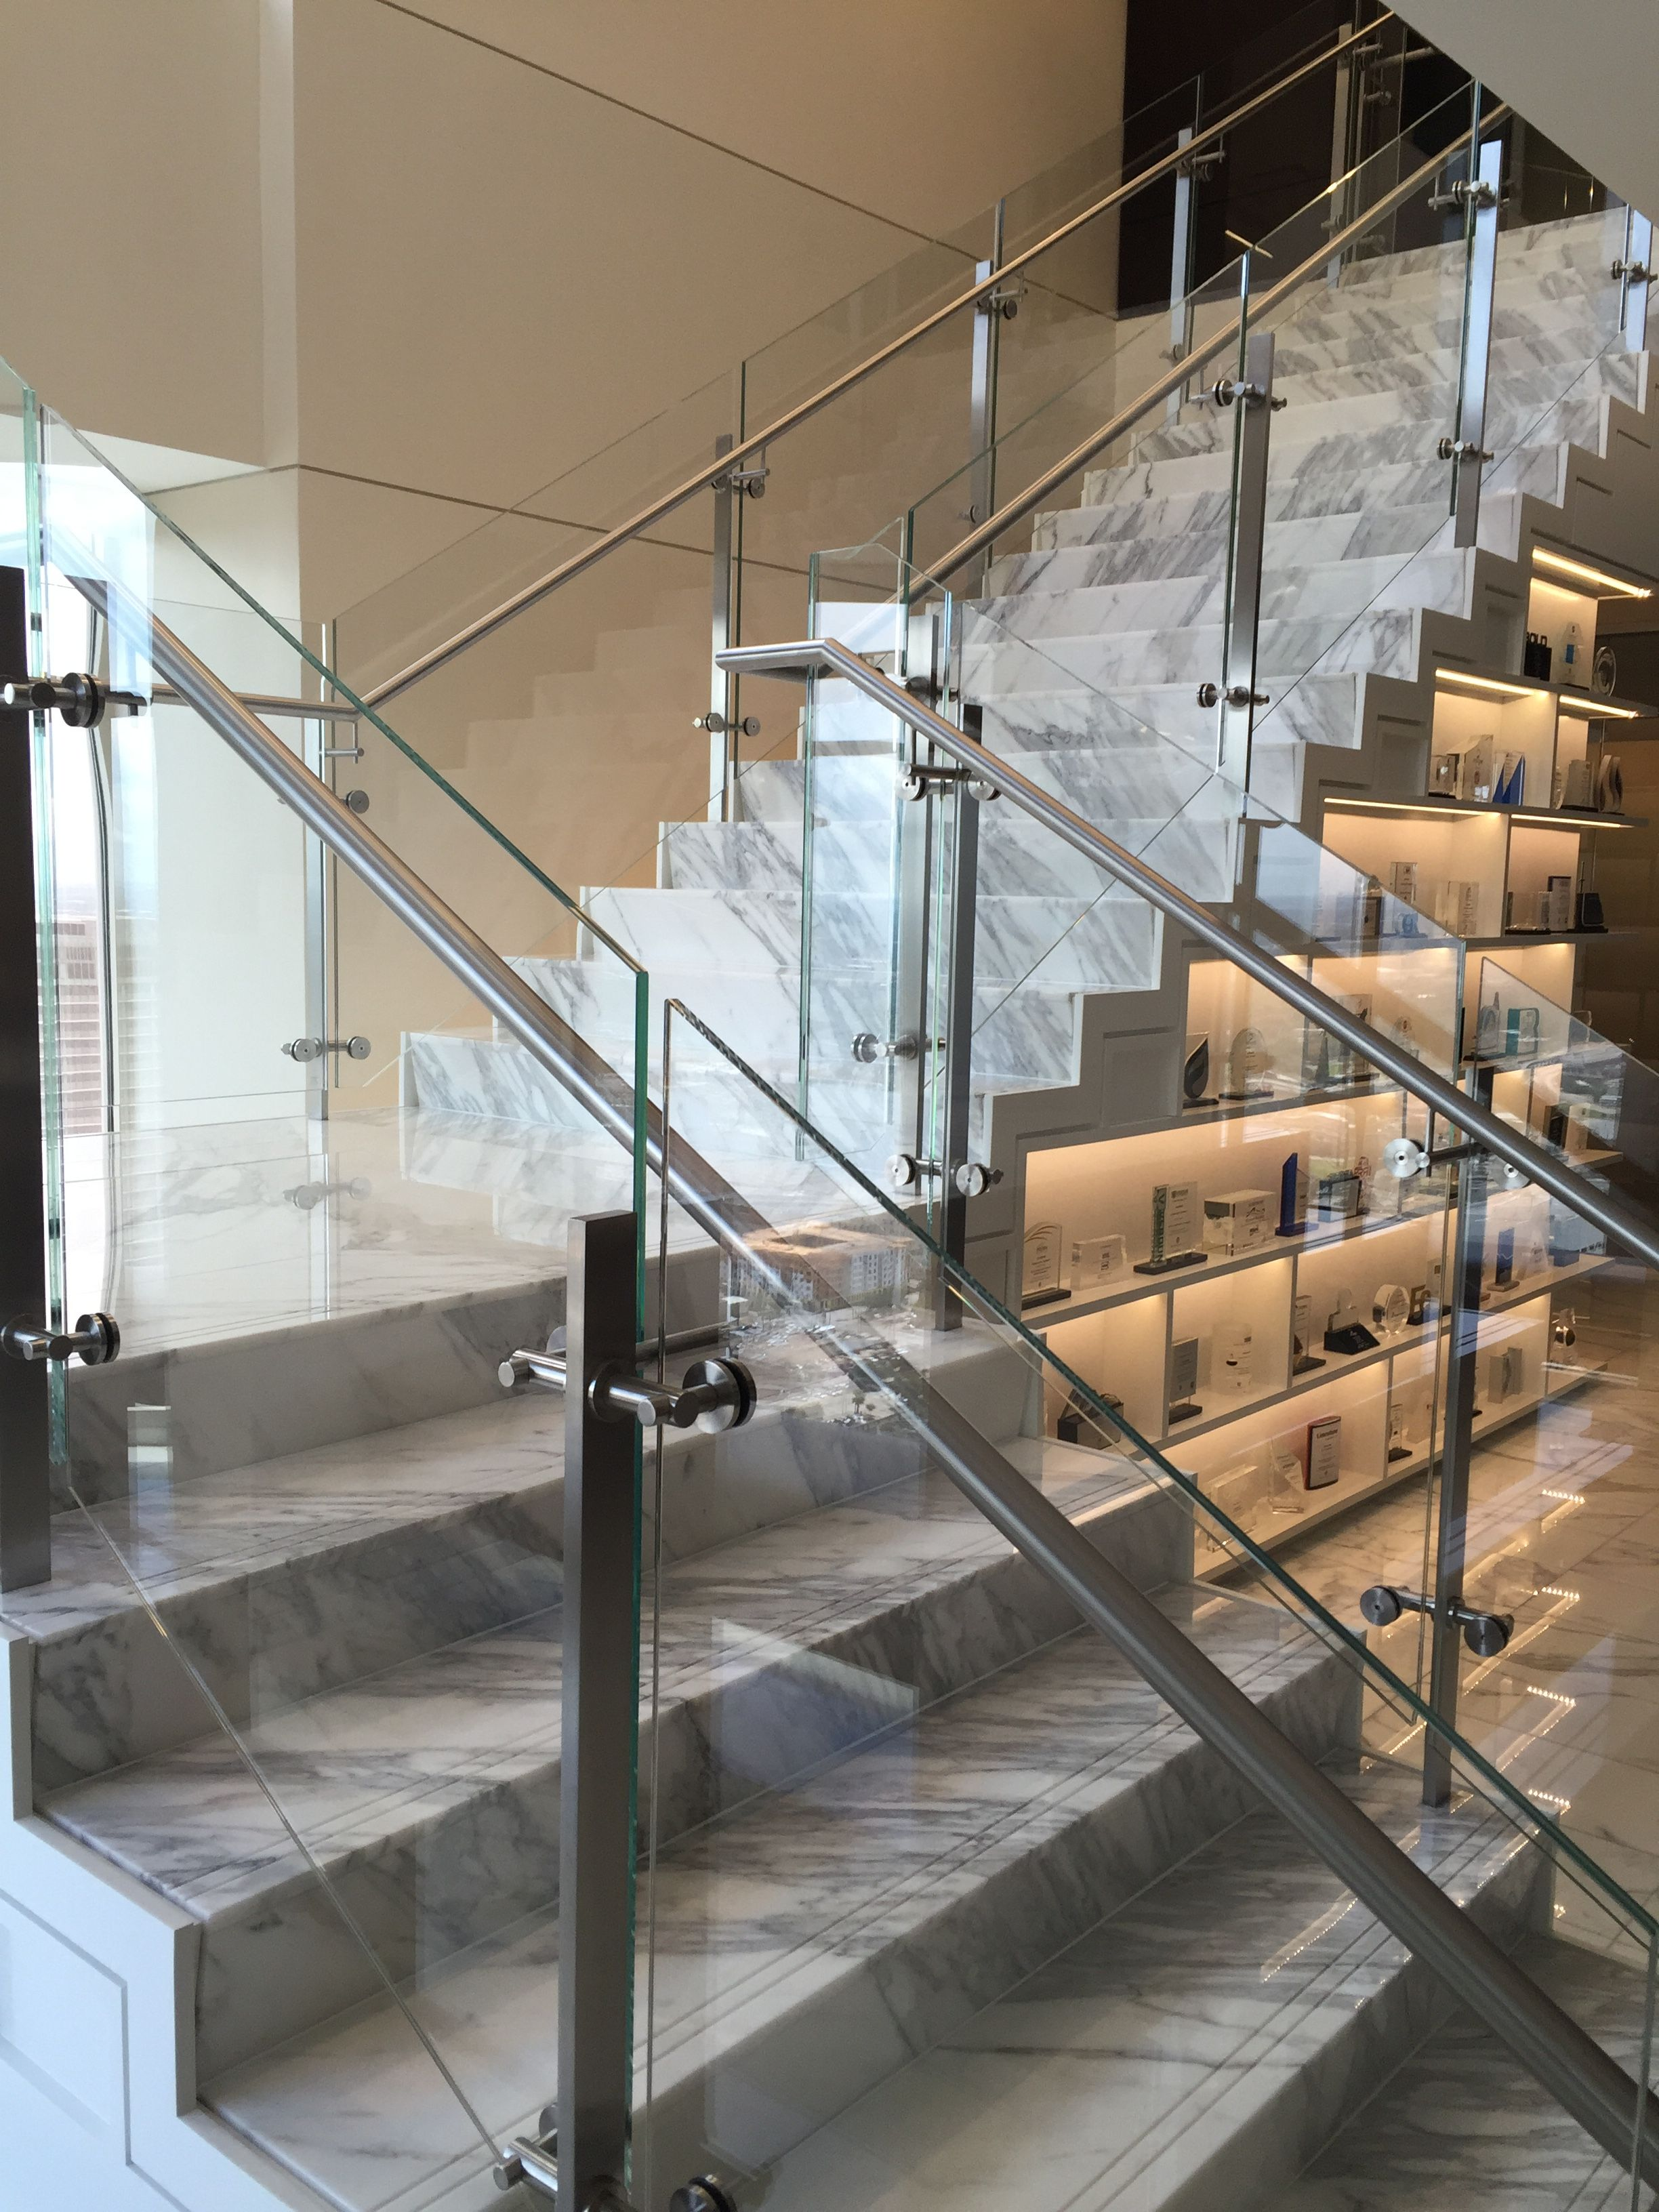 Glass Railing With Stainless Steel Glass Clamps Glass | Steel Railing With Glass For Stairs